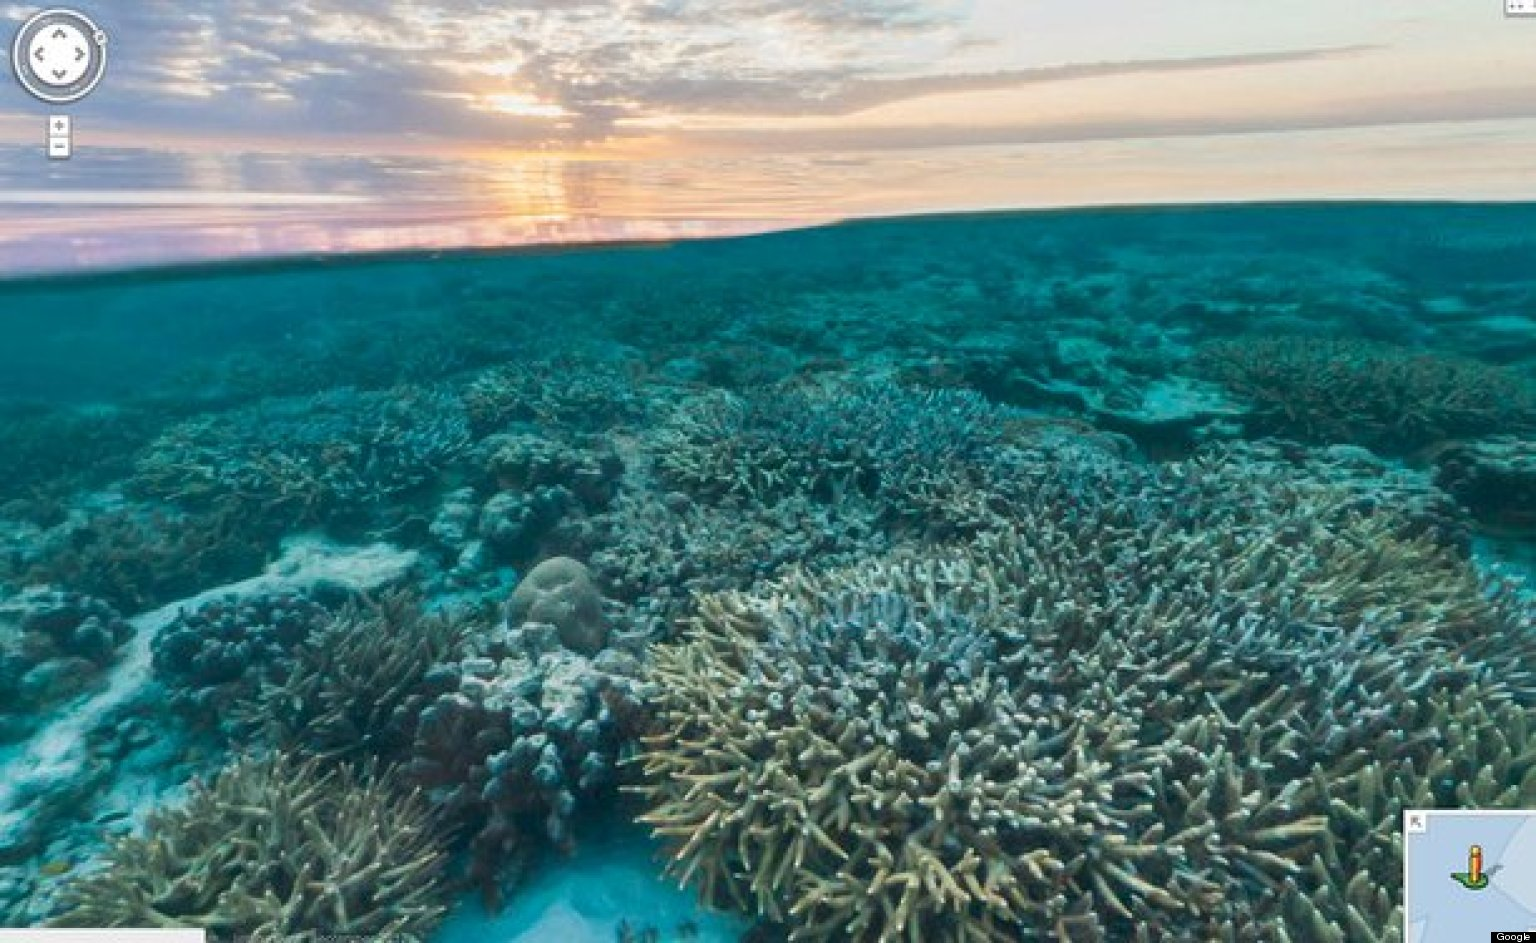 Googles underwater maps show coral reefs stunning sea life views googles underwater maps show coral reefs stunning sea life views photos video huffpost gumiabroncs